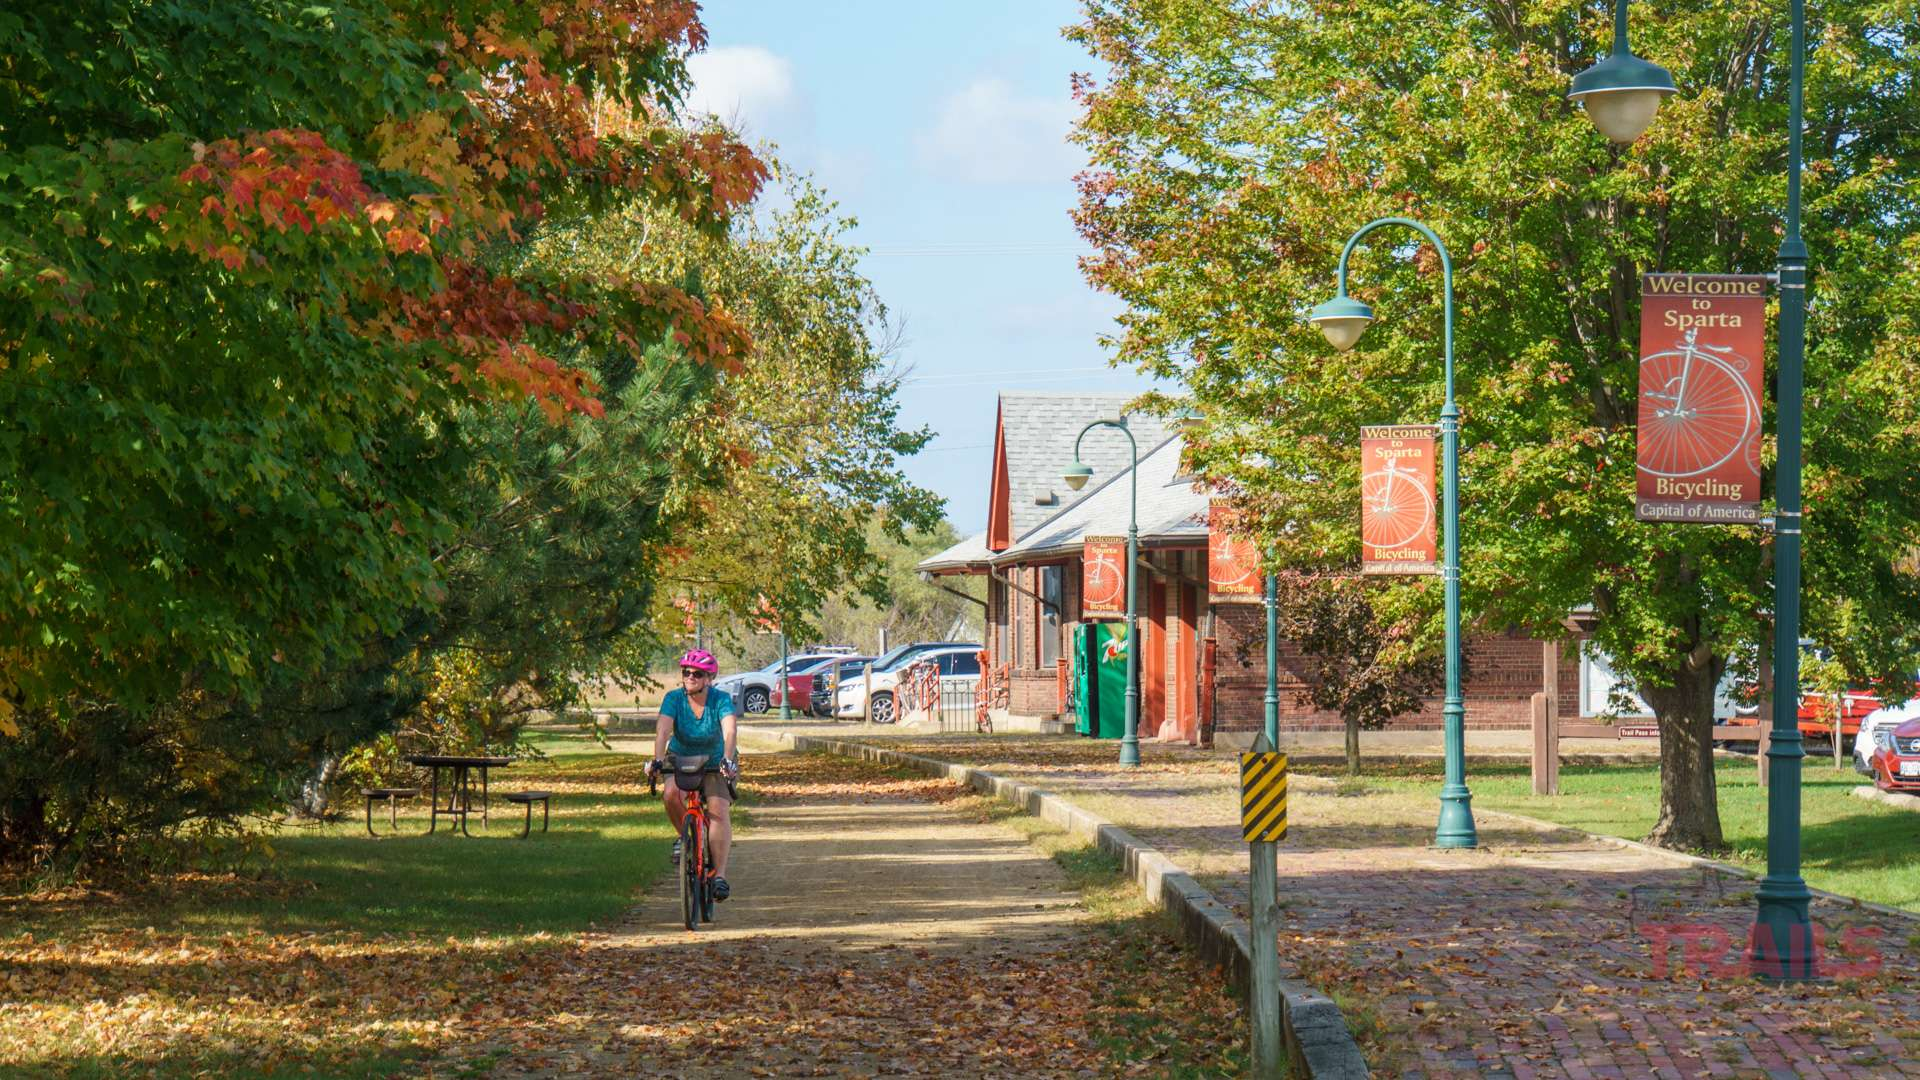 A woman rides her bicycle along a gravel path in the fall with a historic train depot in the background